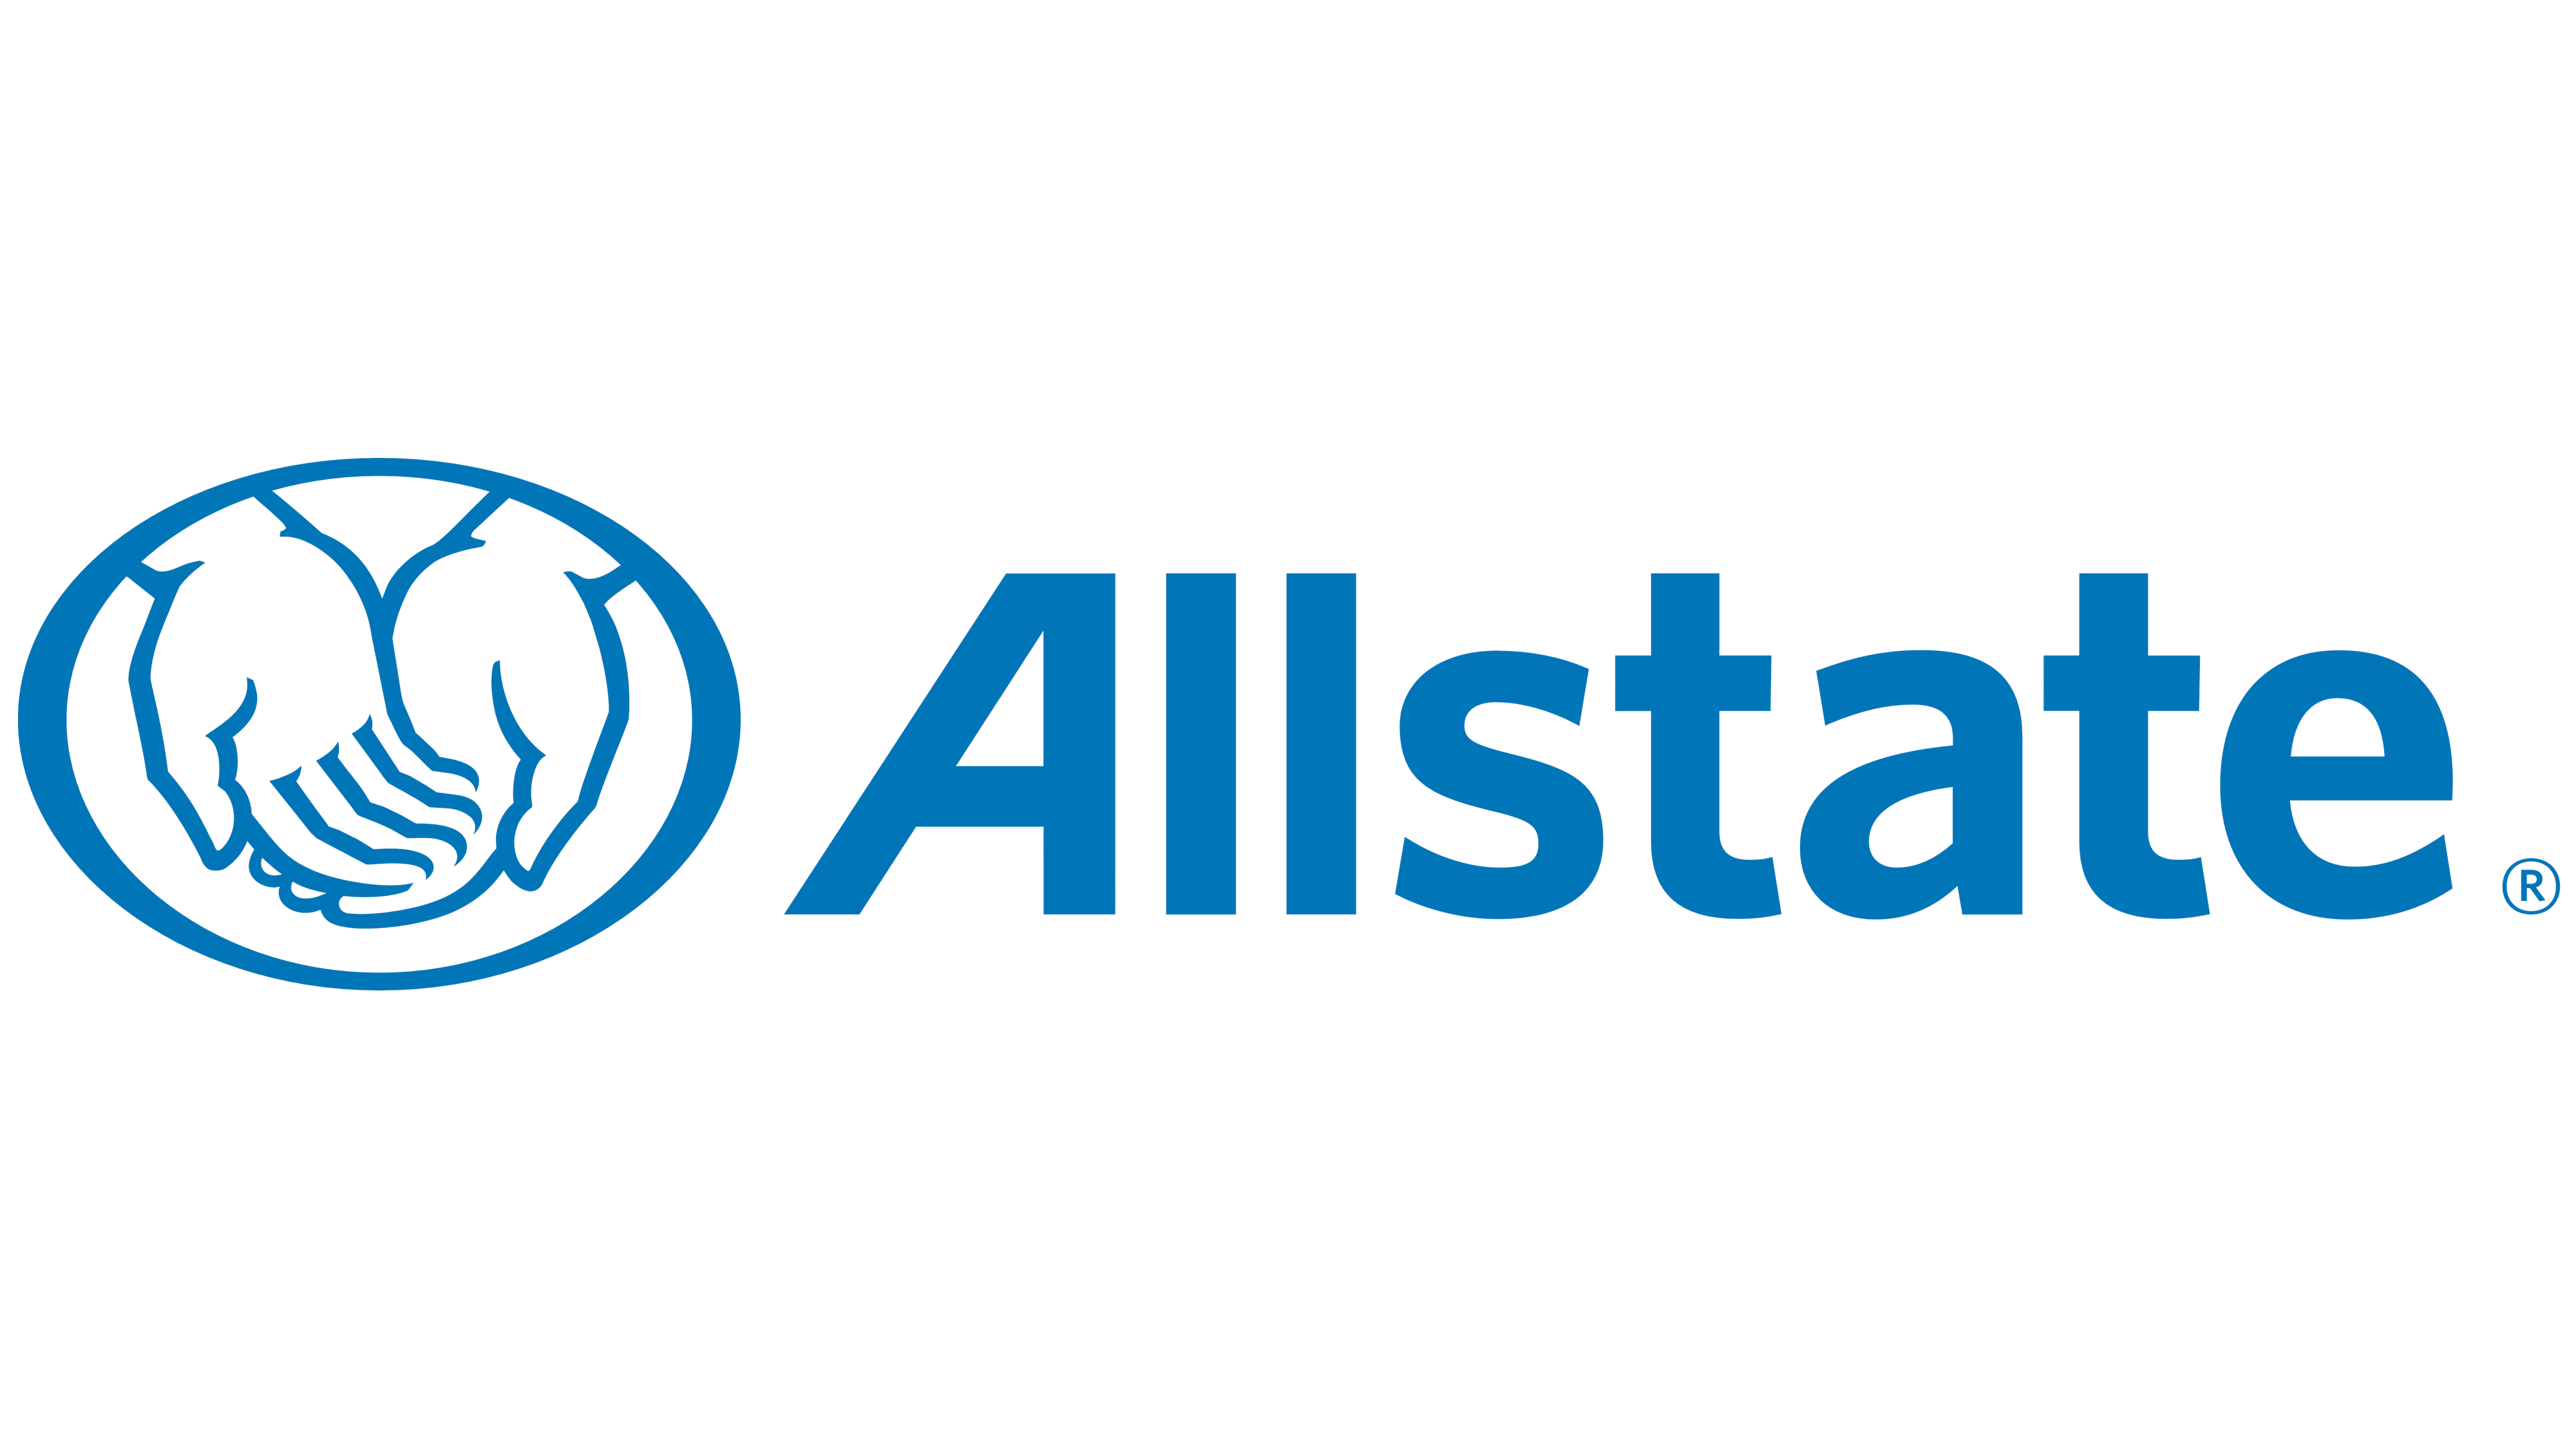 How to change the color of a png logo. Allstate wallpaper cr since